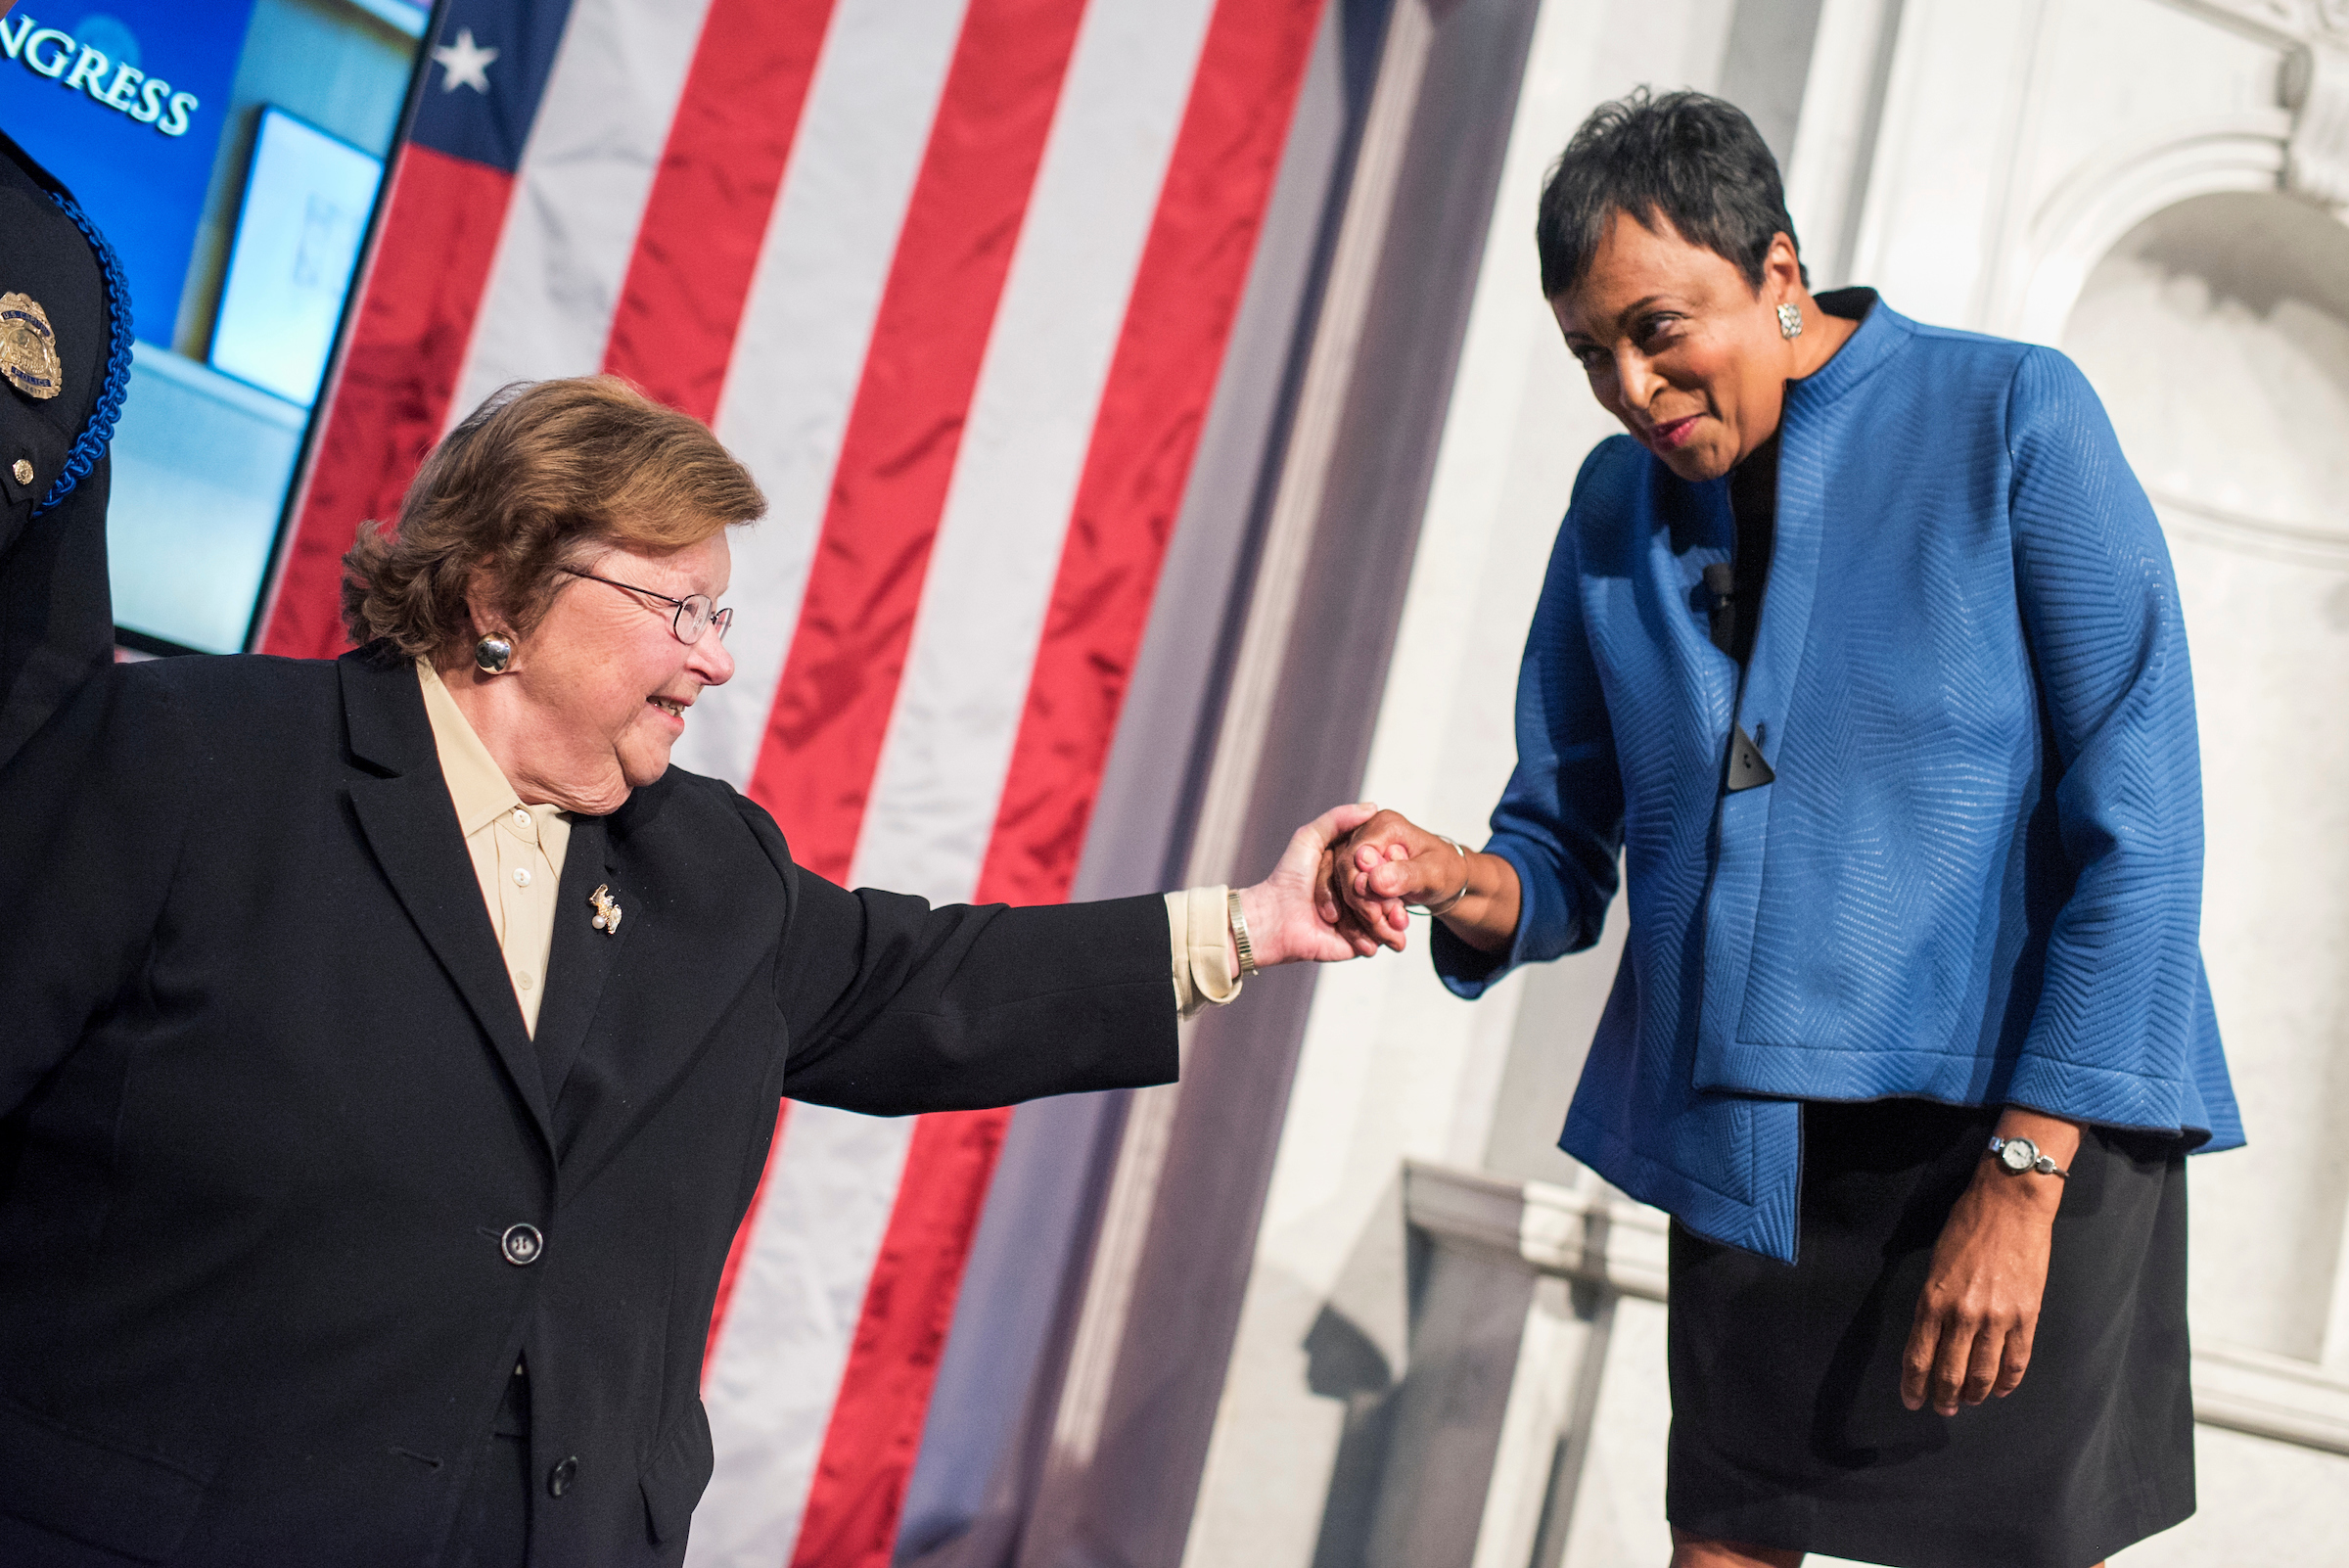 Maryland Sen. Barbara A. Mikulski, left, greets Carla Hayden during her swearing-in ceremony as Librarian of Congress in the Great Hall of the Thomas Jefferson Building on Wednesday, September 14, 2016. (Tom Williams/CQ Roll Call)